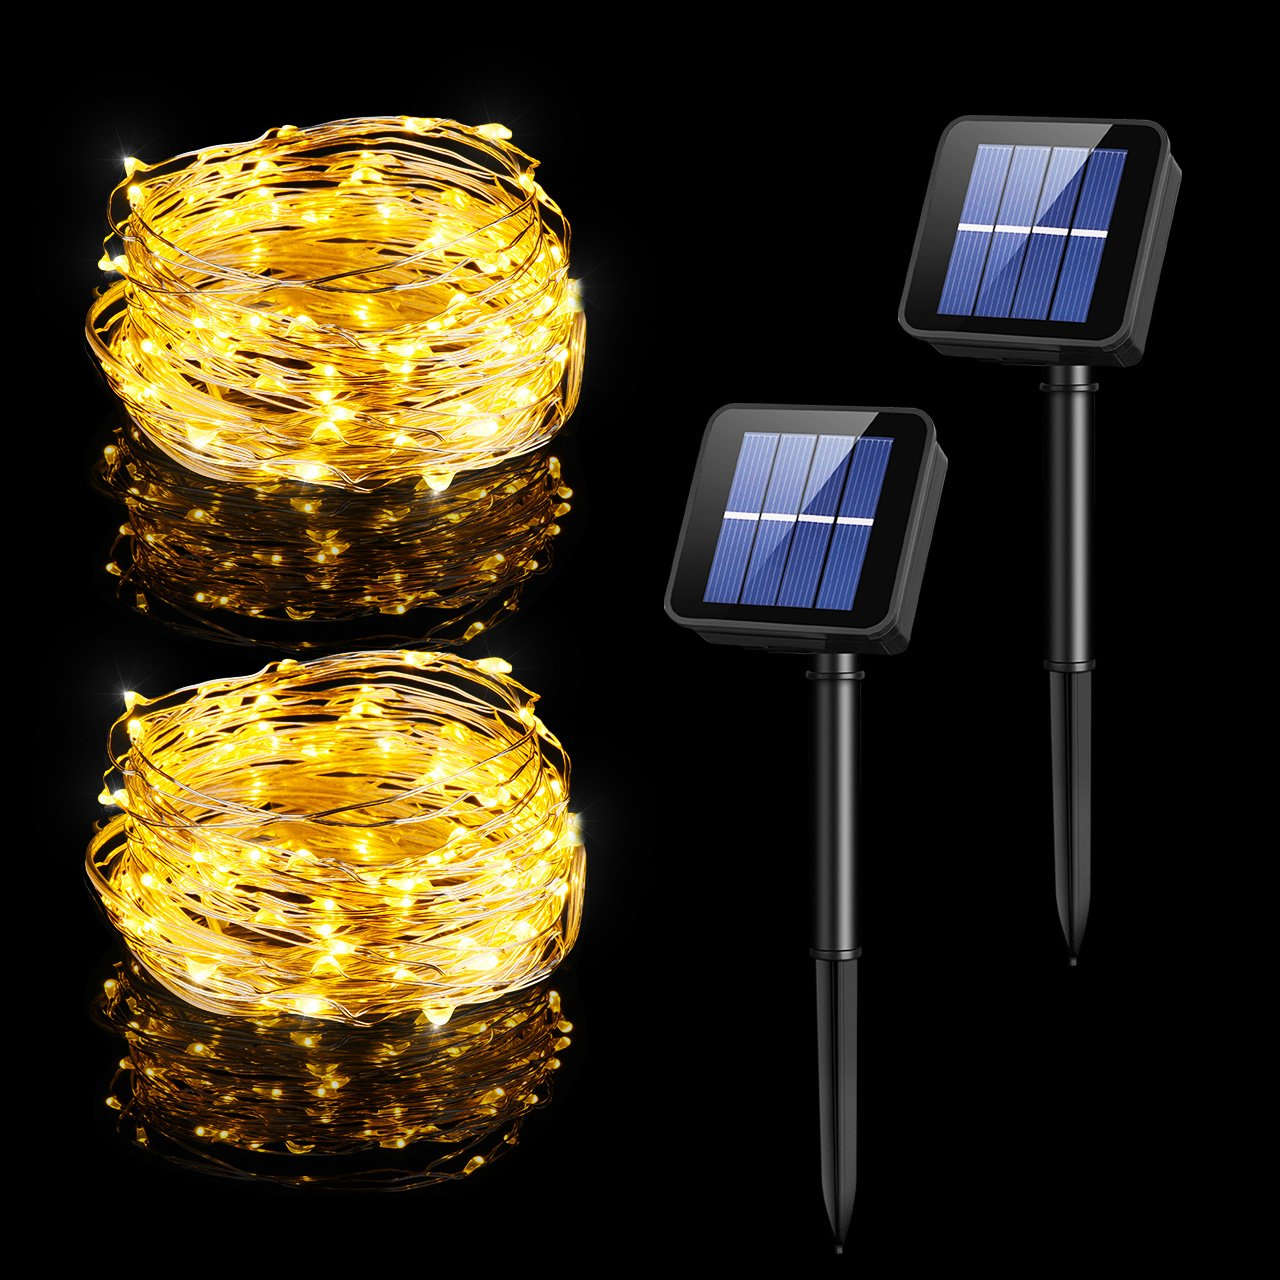 in solar lawn park from lamp yard lamps flower waterproof landscape decor decorations fairy lights rose light led item outdoor garden power path night